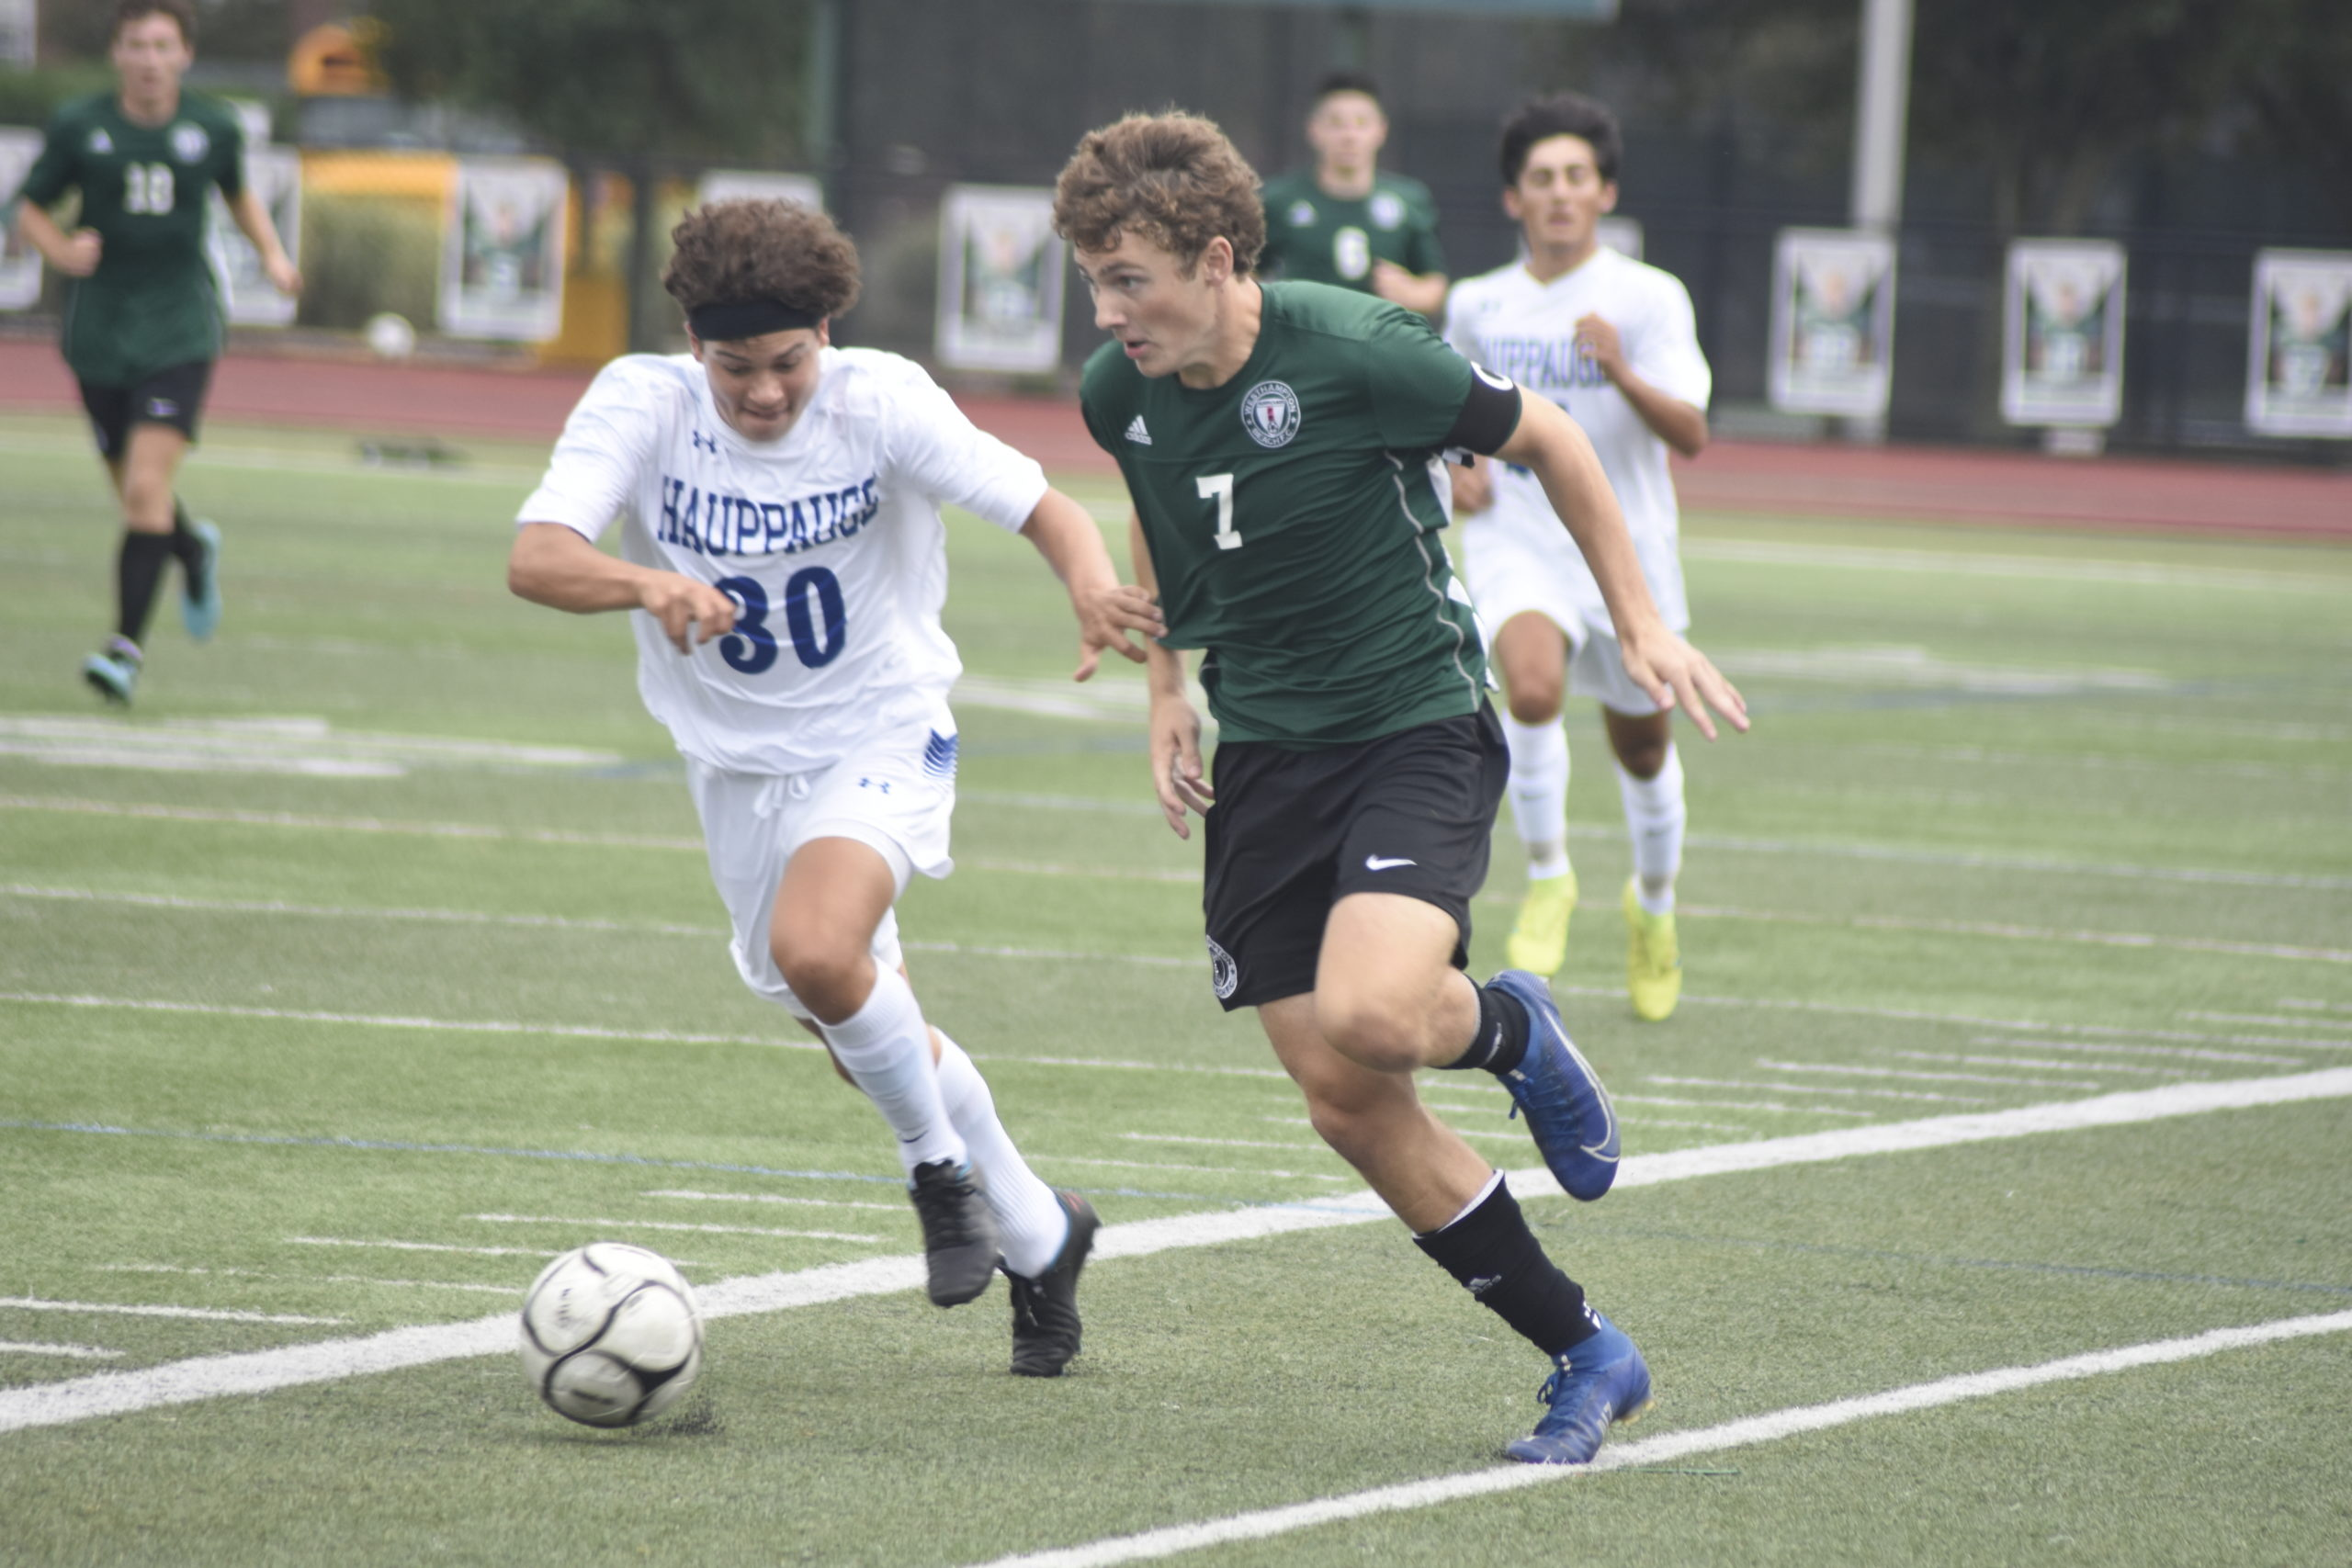 Westhampton Beach senior co-captain Andre Insalaco and a Happauge player battle for ball possession at midfield.